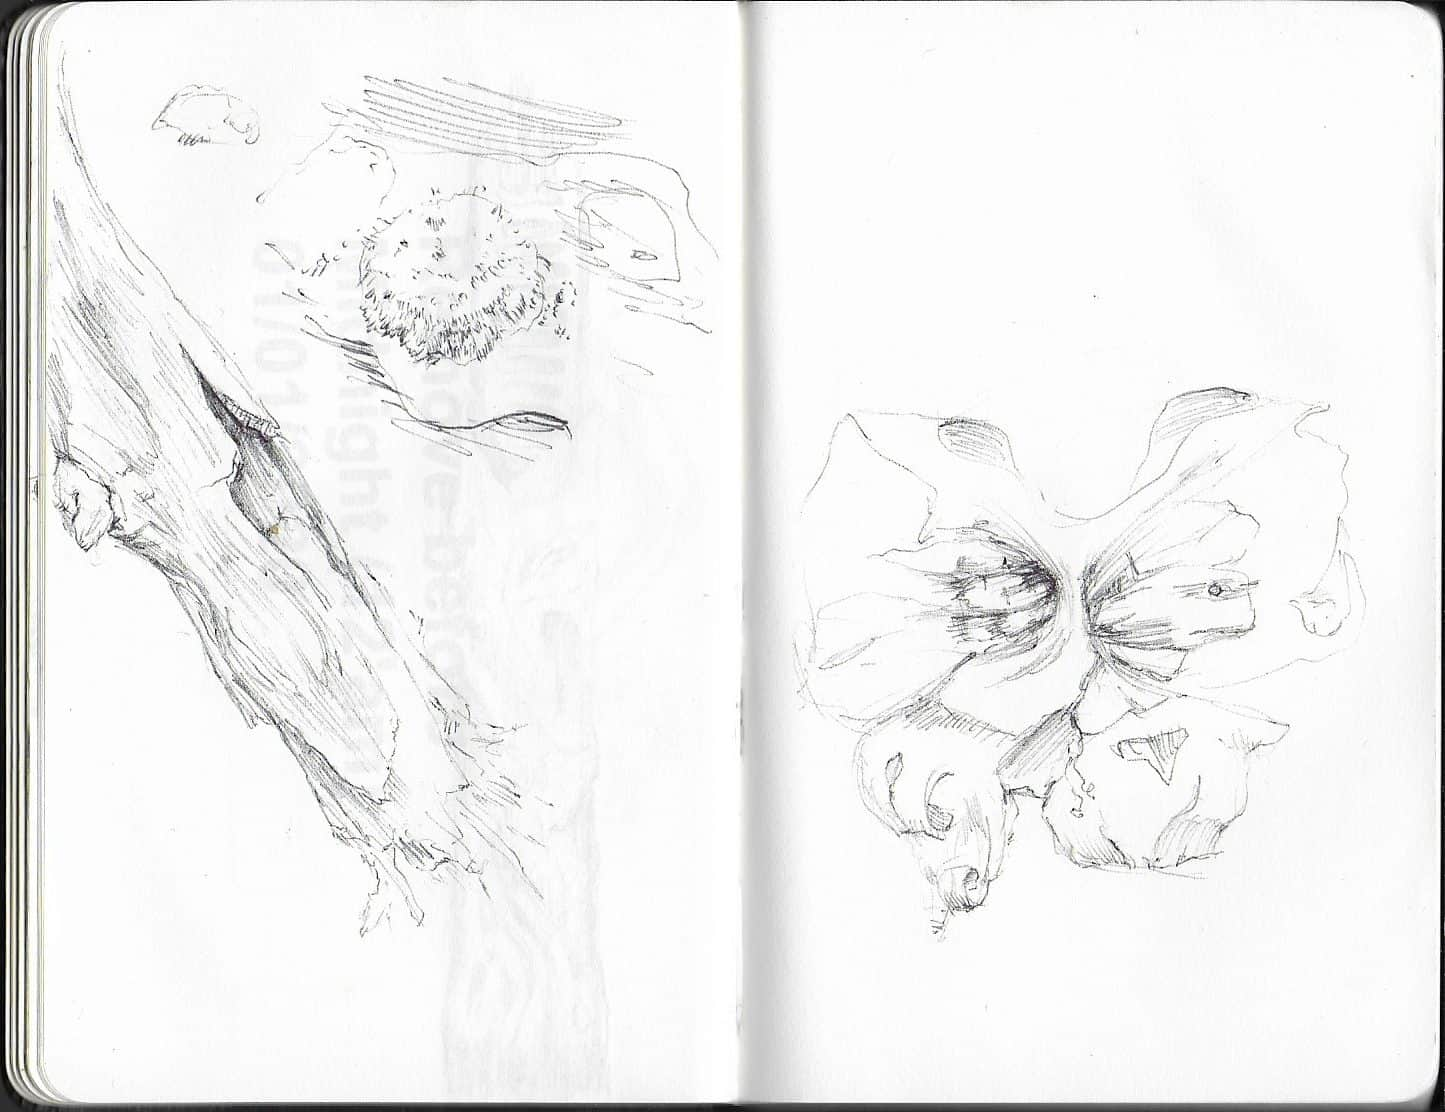 drawing of abstract natural forms, tree bark and seedpod like